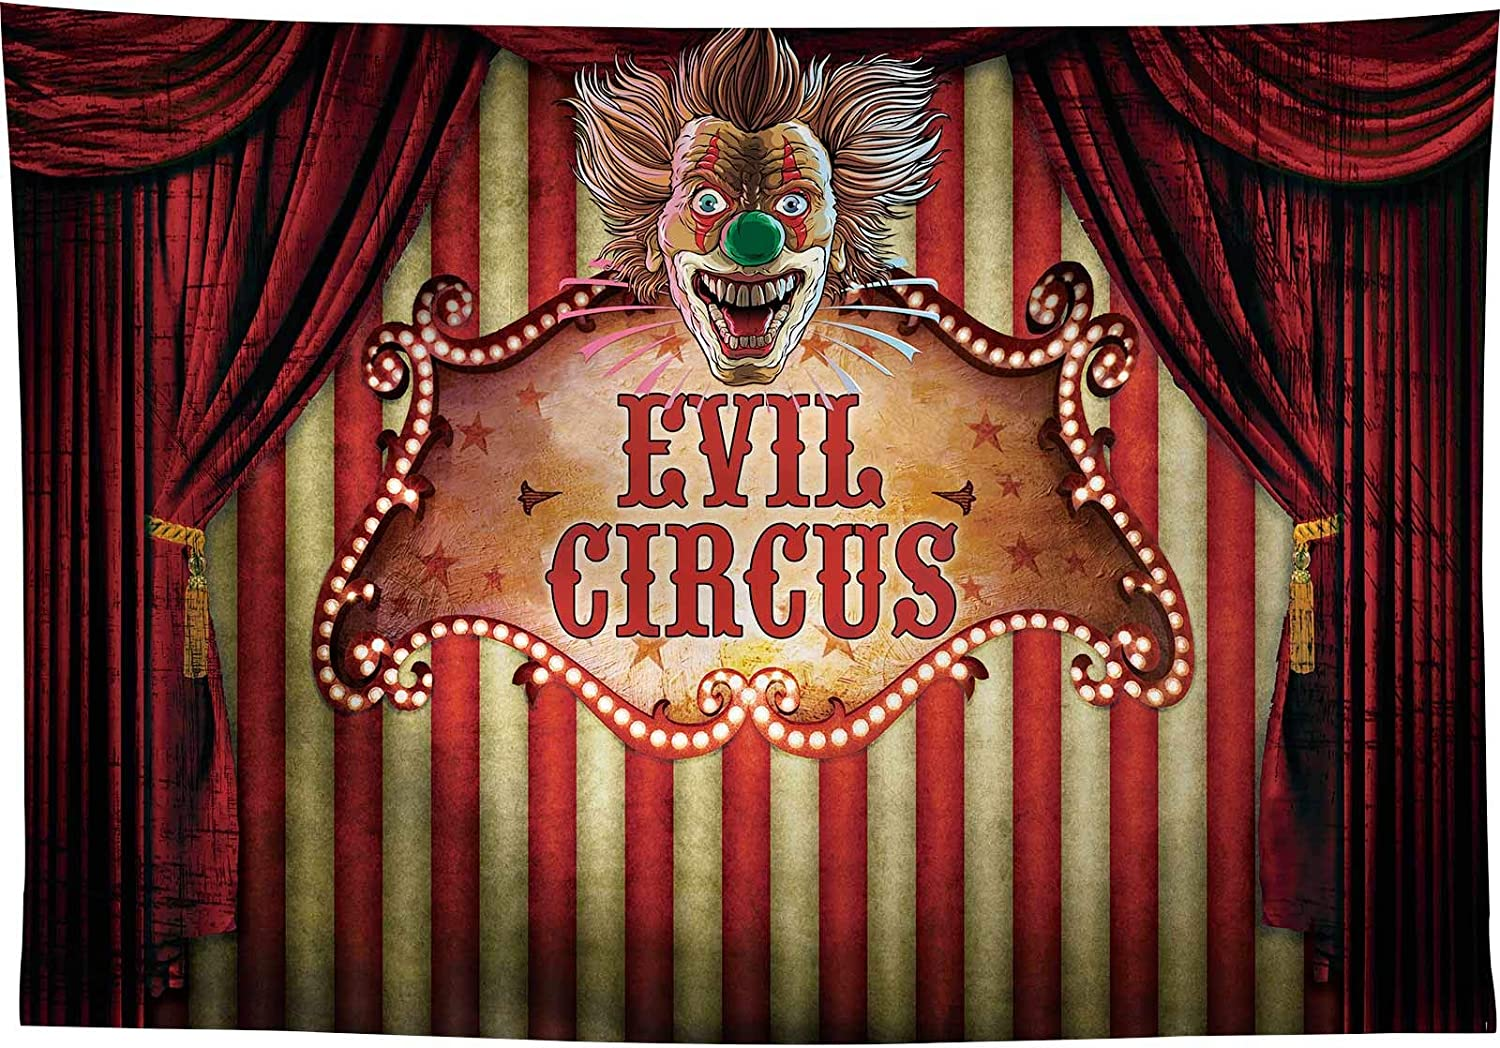 Allenjoy 7x5ft Halloween Evil Circus Backrop for Birthday Party Supplies Decorations Horrible Prom Photography Scary Carnival Banner Background Red Stripes Curtain Pictures Photoshoot Props Favors